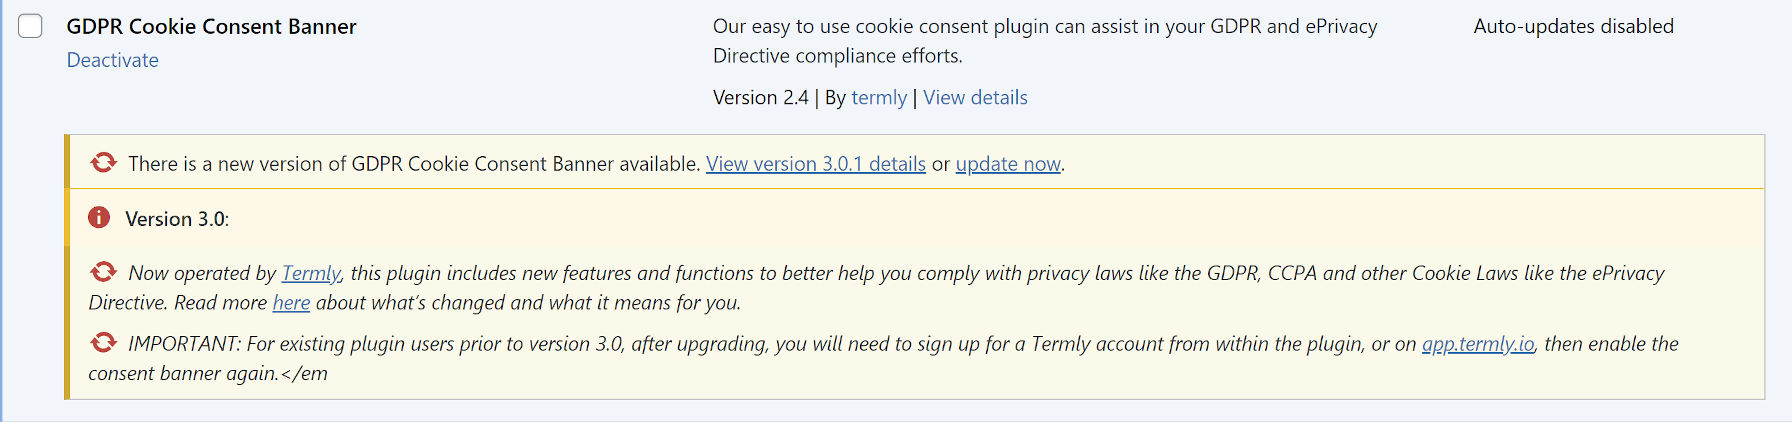 Admin notice from the GDPR Cookie Consent Plugin before upgrading to 3.0.